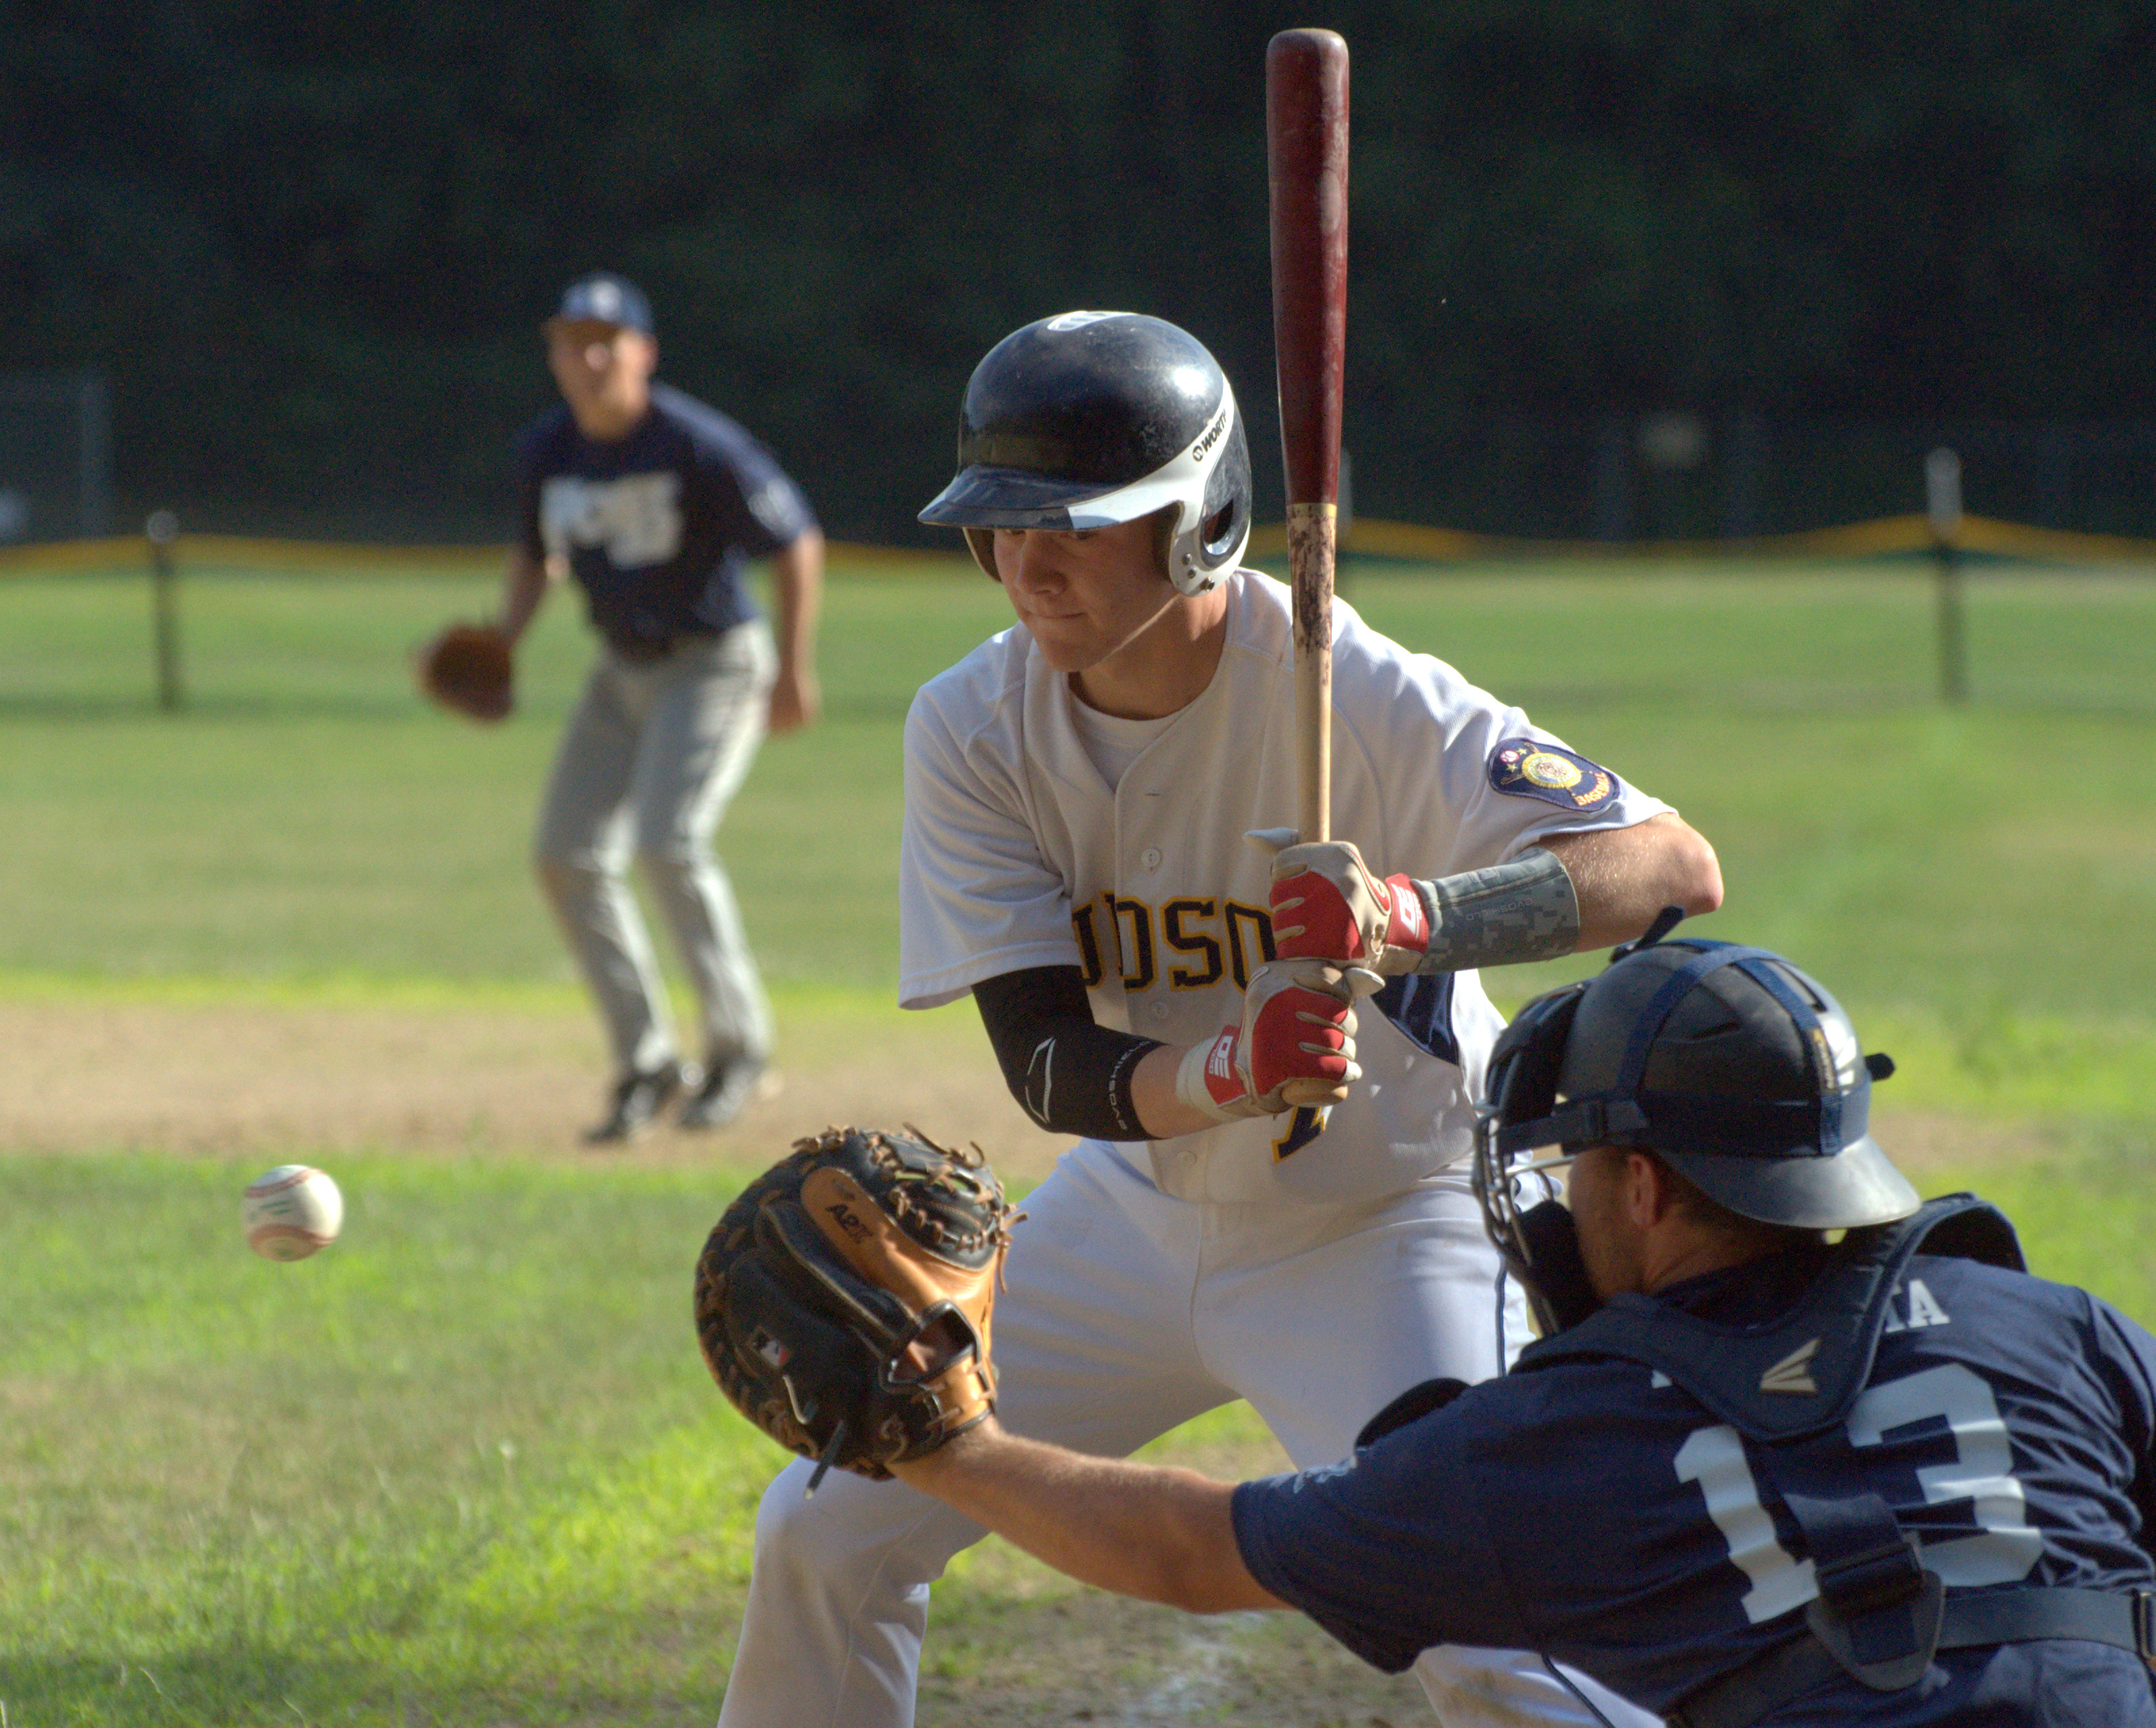 Hudson's Dan Brown takes a pitch during Friday's game against Exeter.